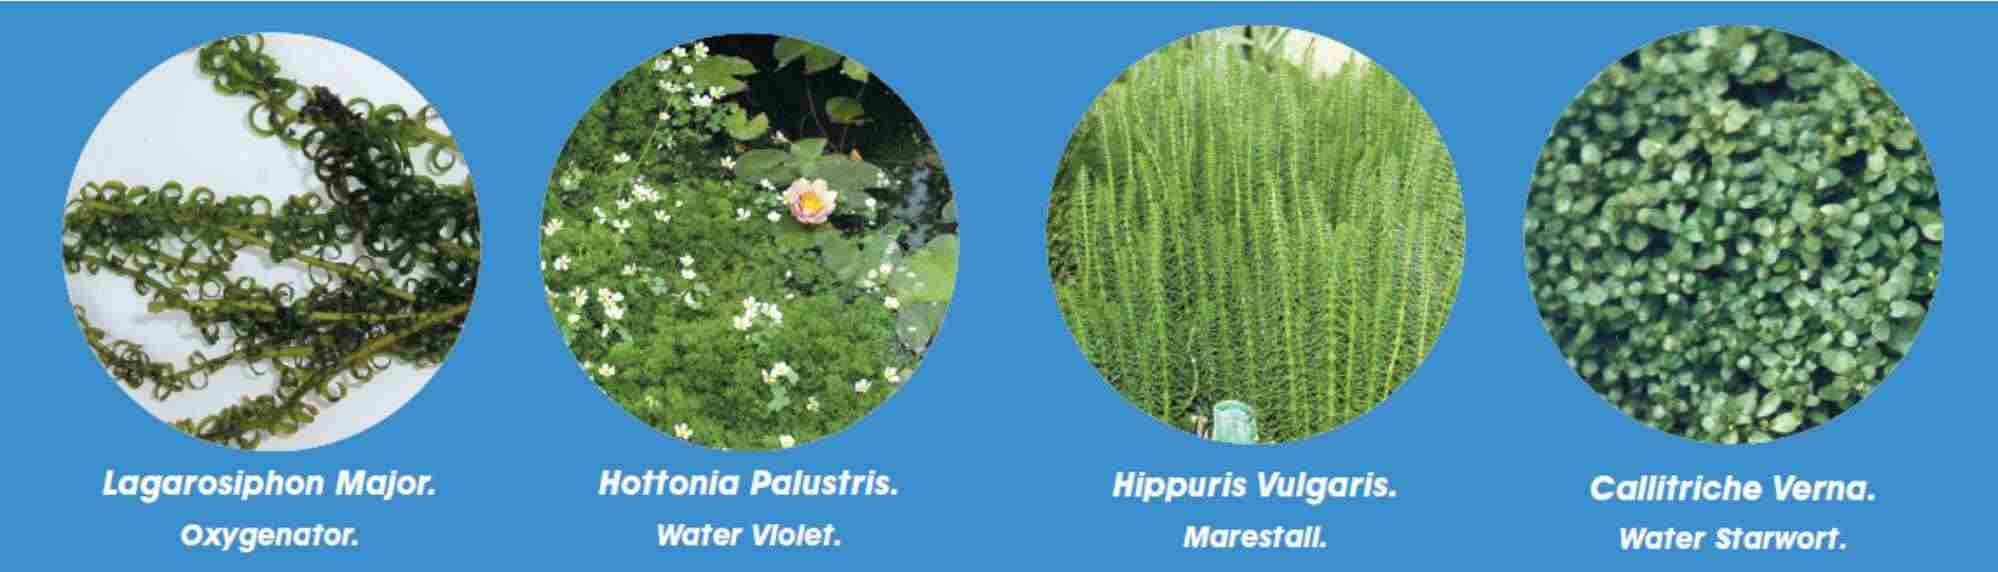 oxygenating-pond-plants.jpg